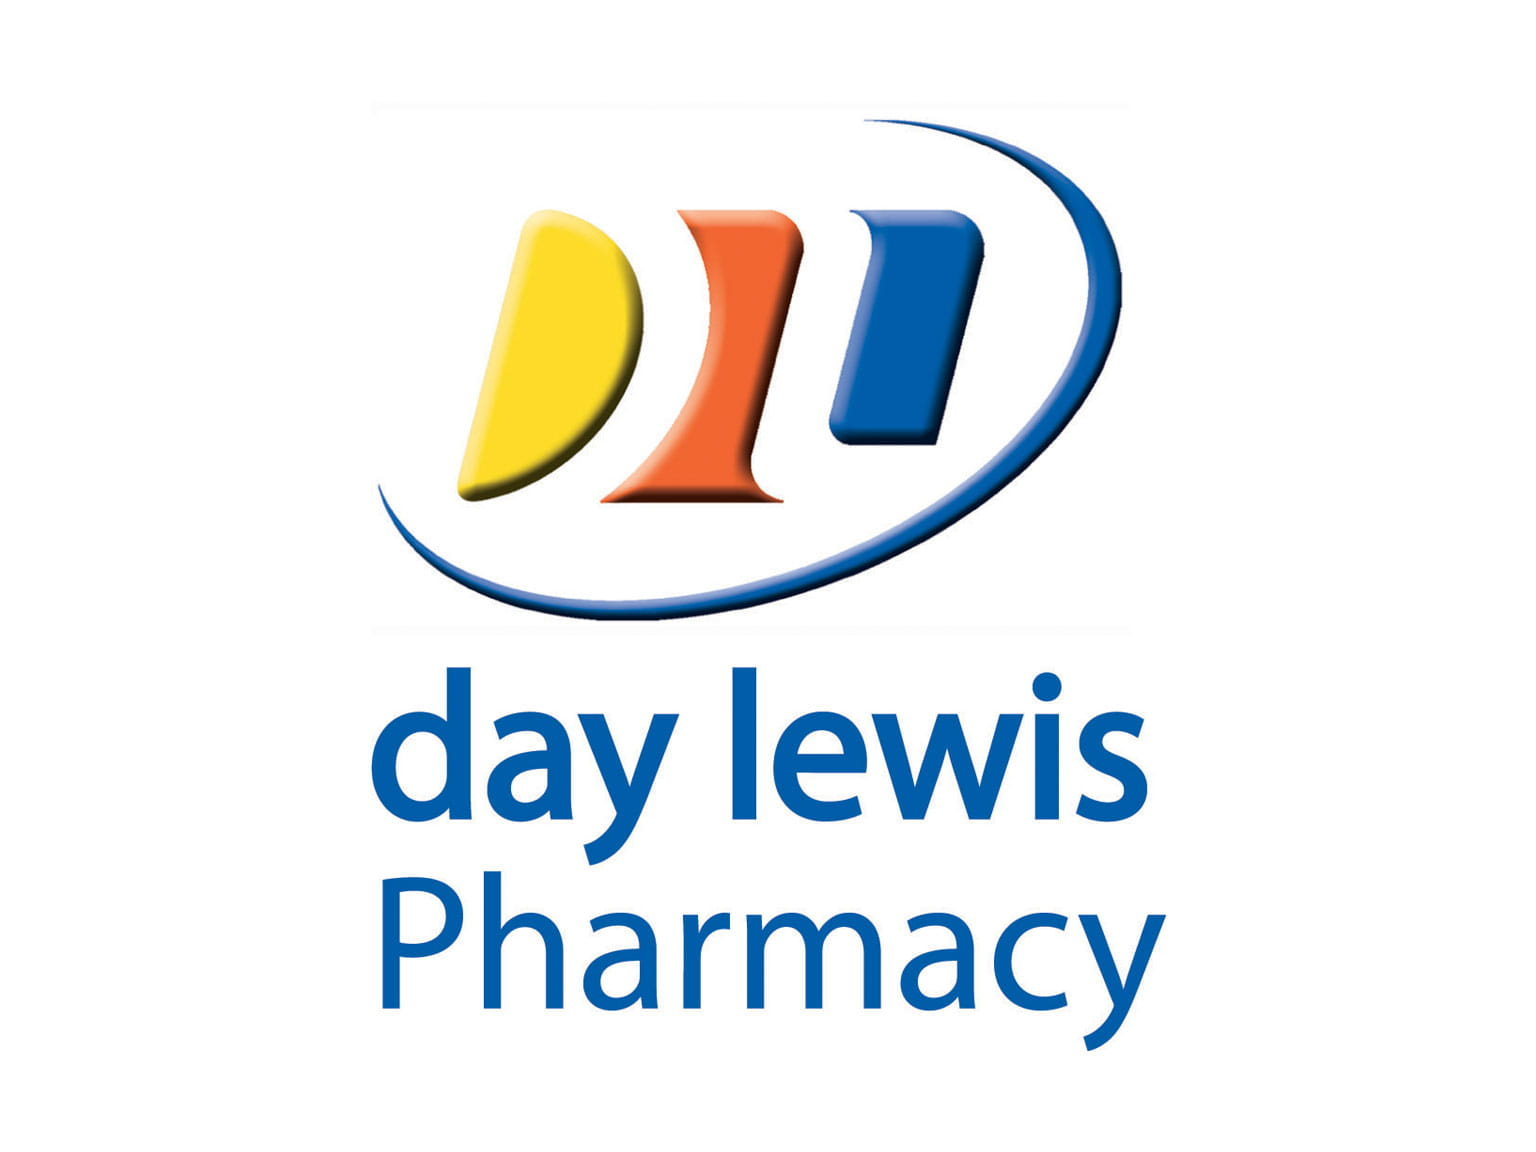 case studies day lewis pharmacy